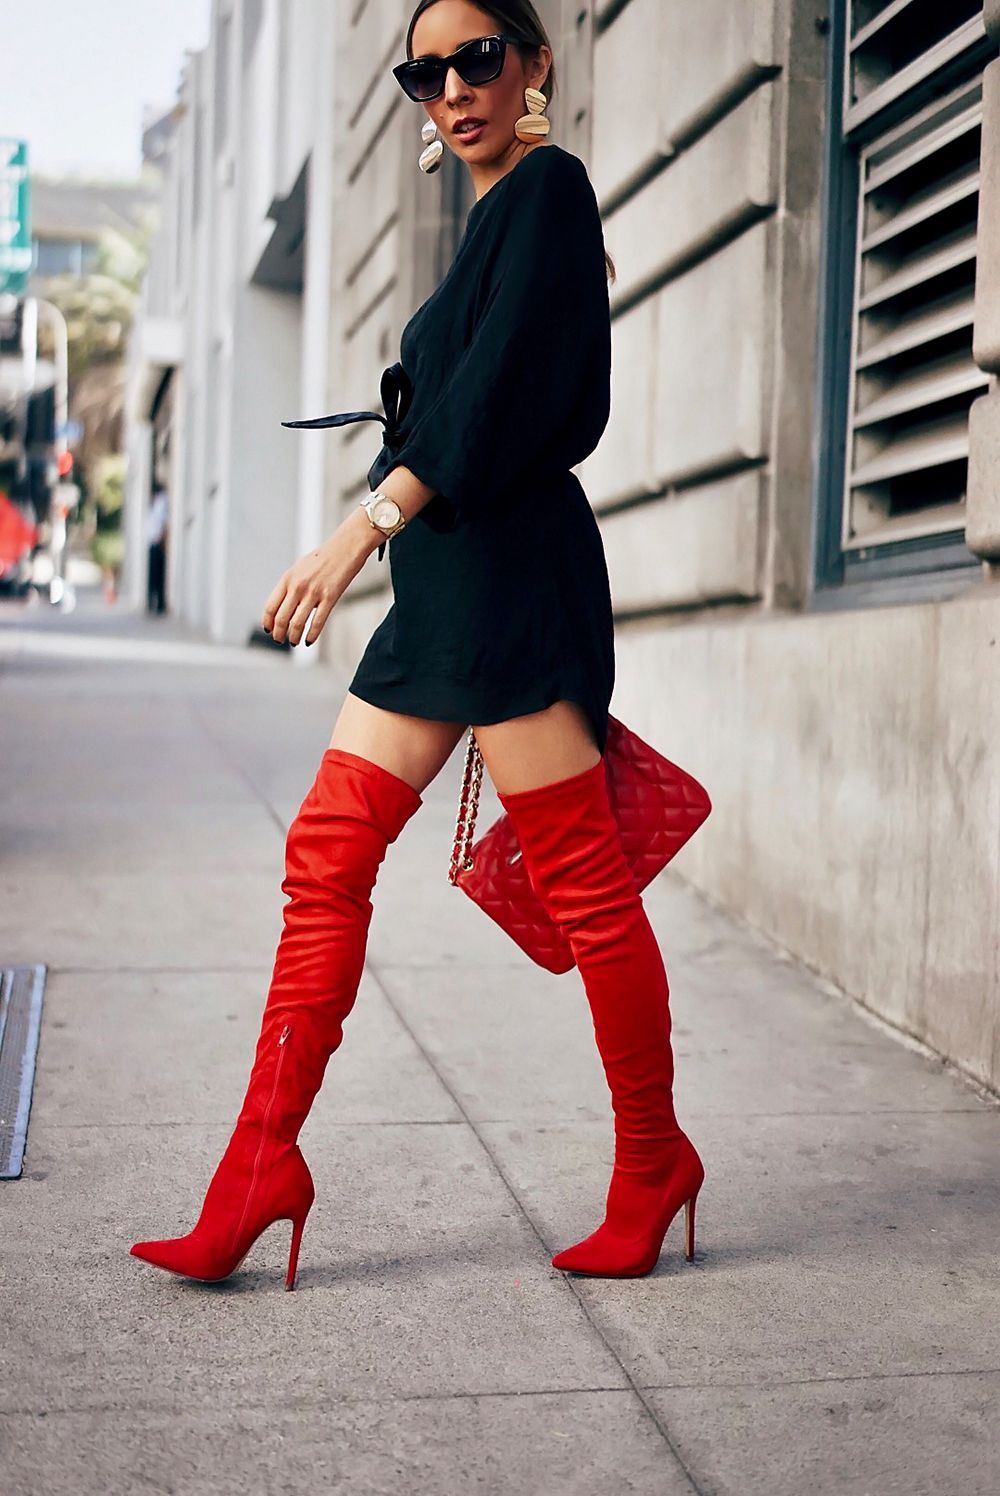 063ef450f5c HOW TO WEAR RED THIGH HIGH BOOTS THIS FALL #redboots #chanelbag ...